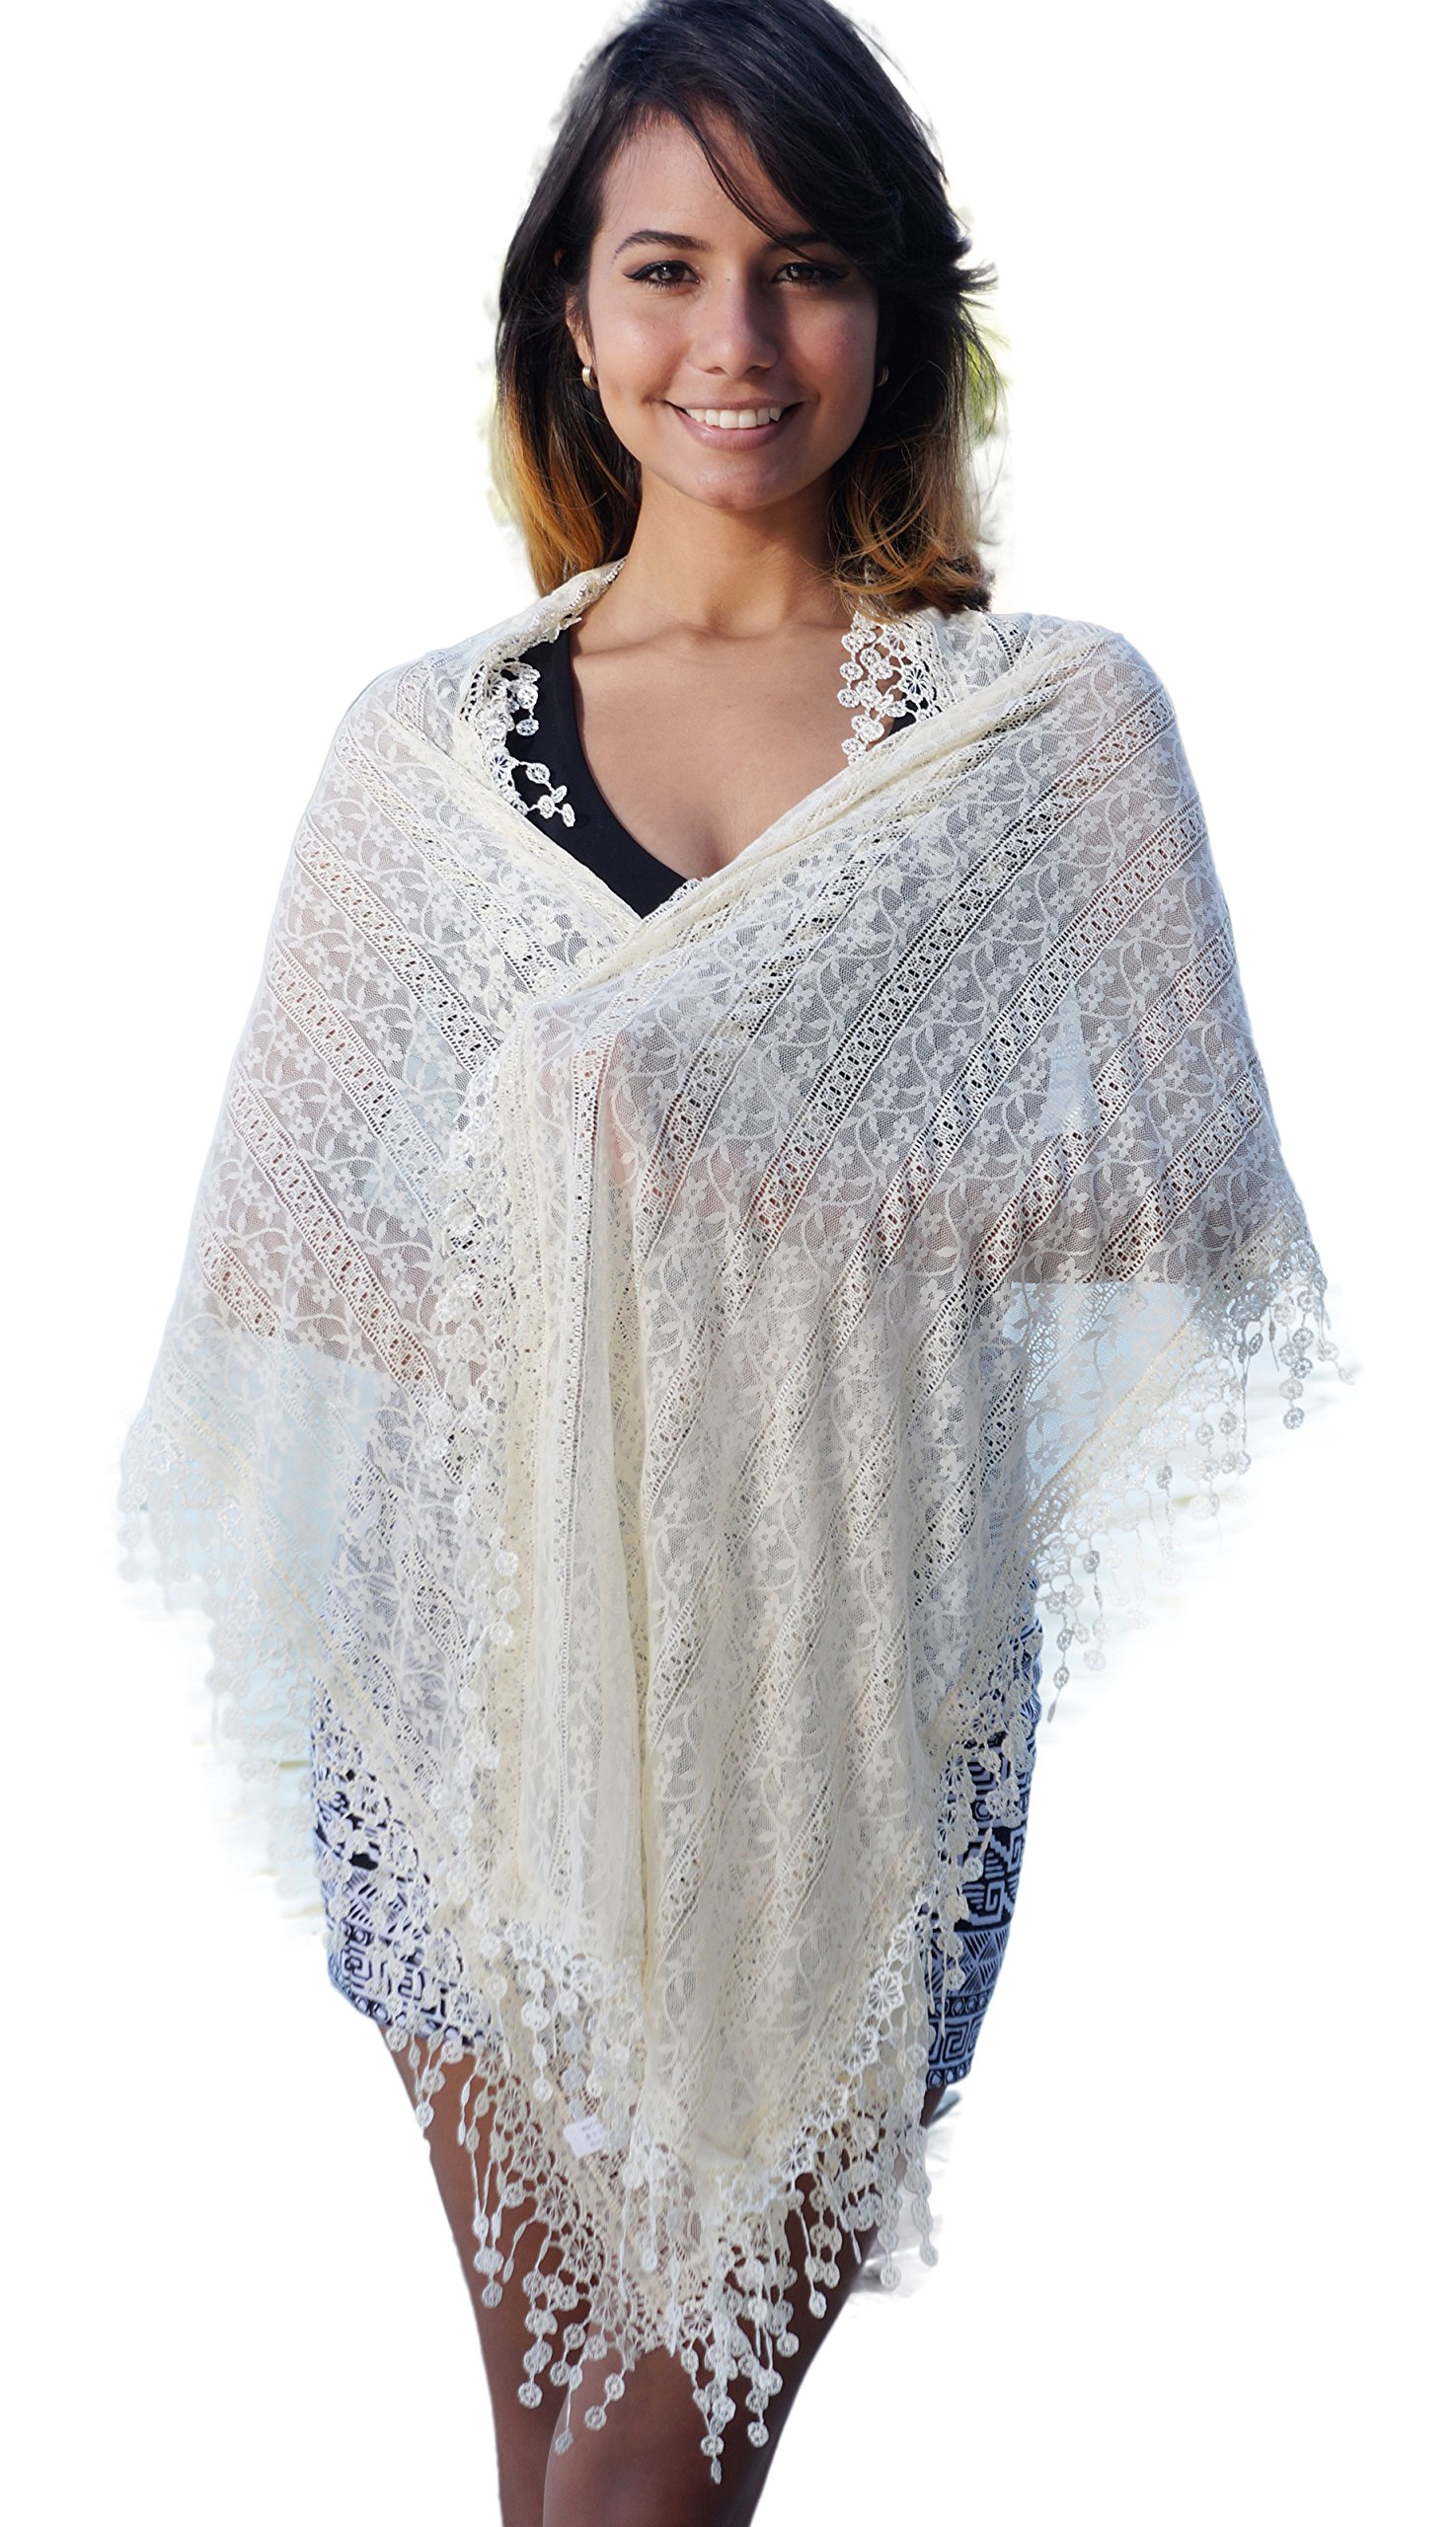 Cindy and Wendy Lightweight Soft Leaf Lace Fringes Scarf shawl for Women (Beige-SH)